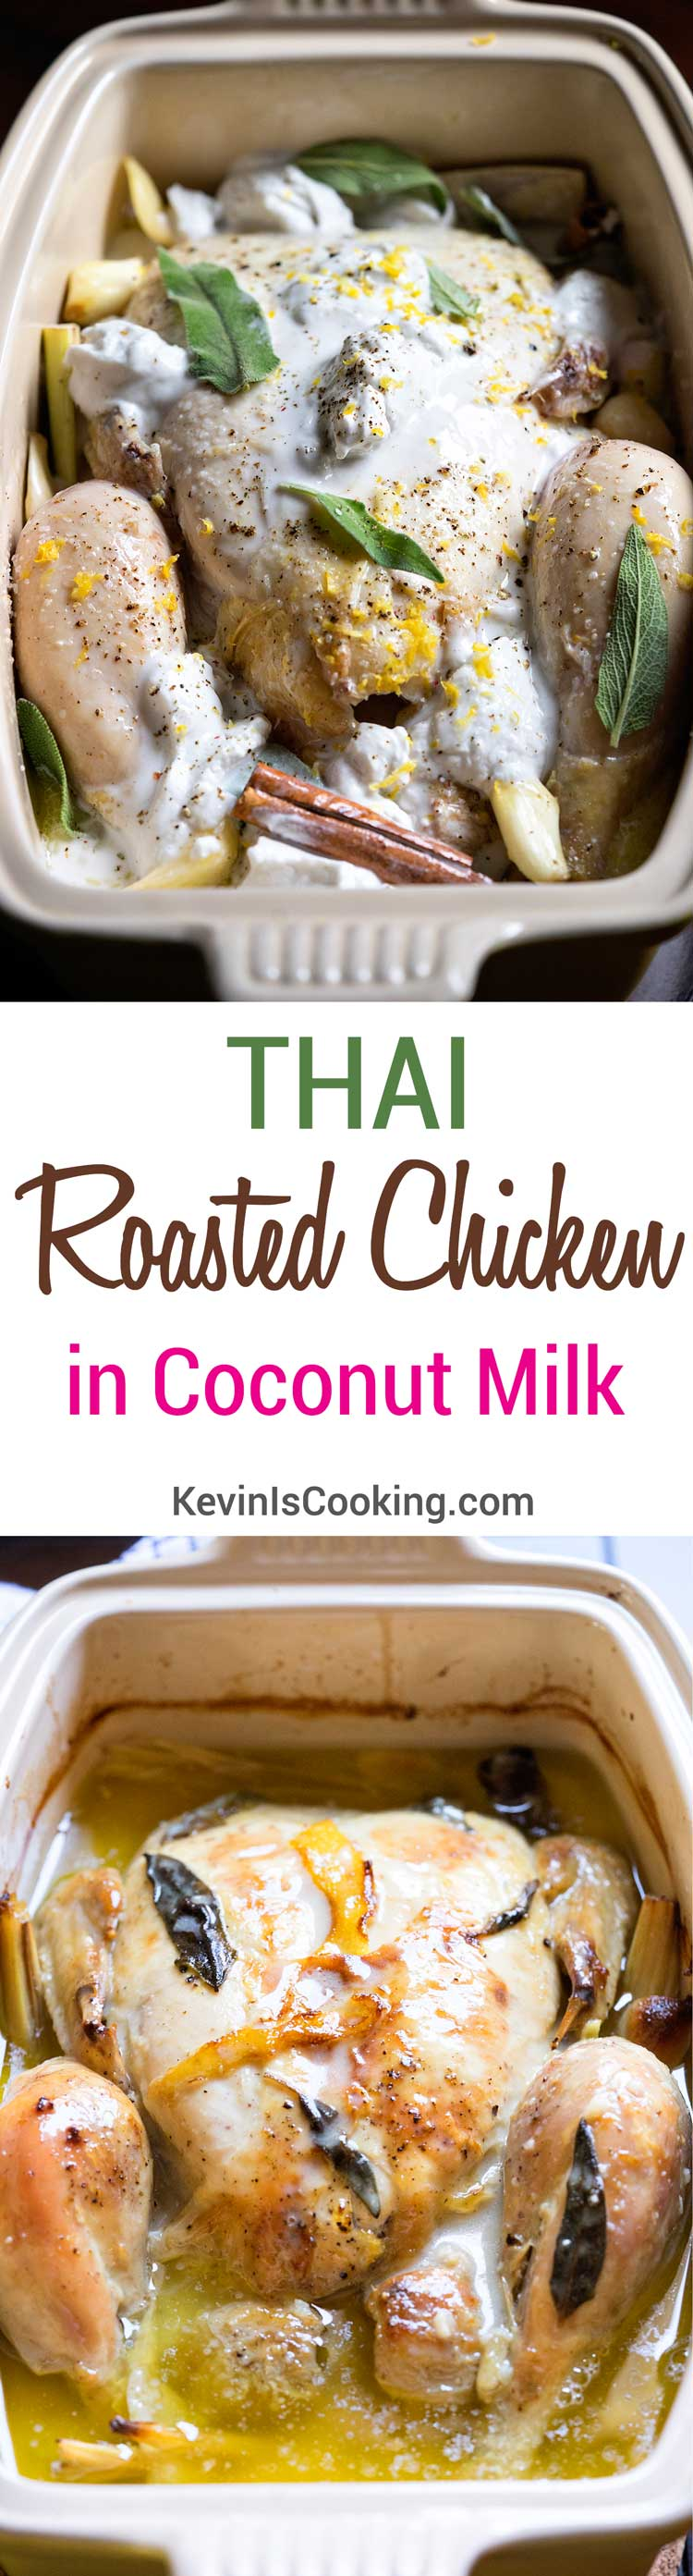 I didn't have any milk on hand for Jamie Oliver's Chicken in Milk, but I did have some coconut milk. This Thai Roasted Chicken in Coconut Milk happened.